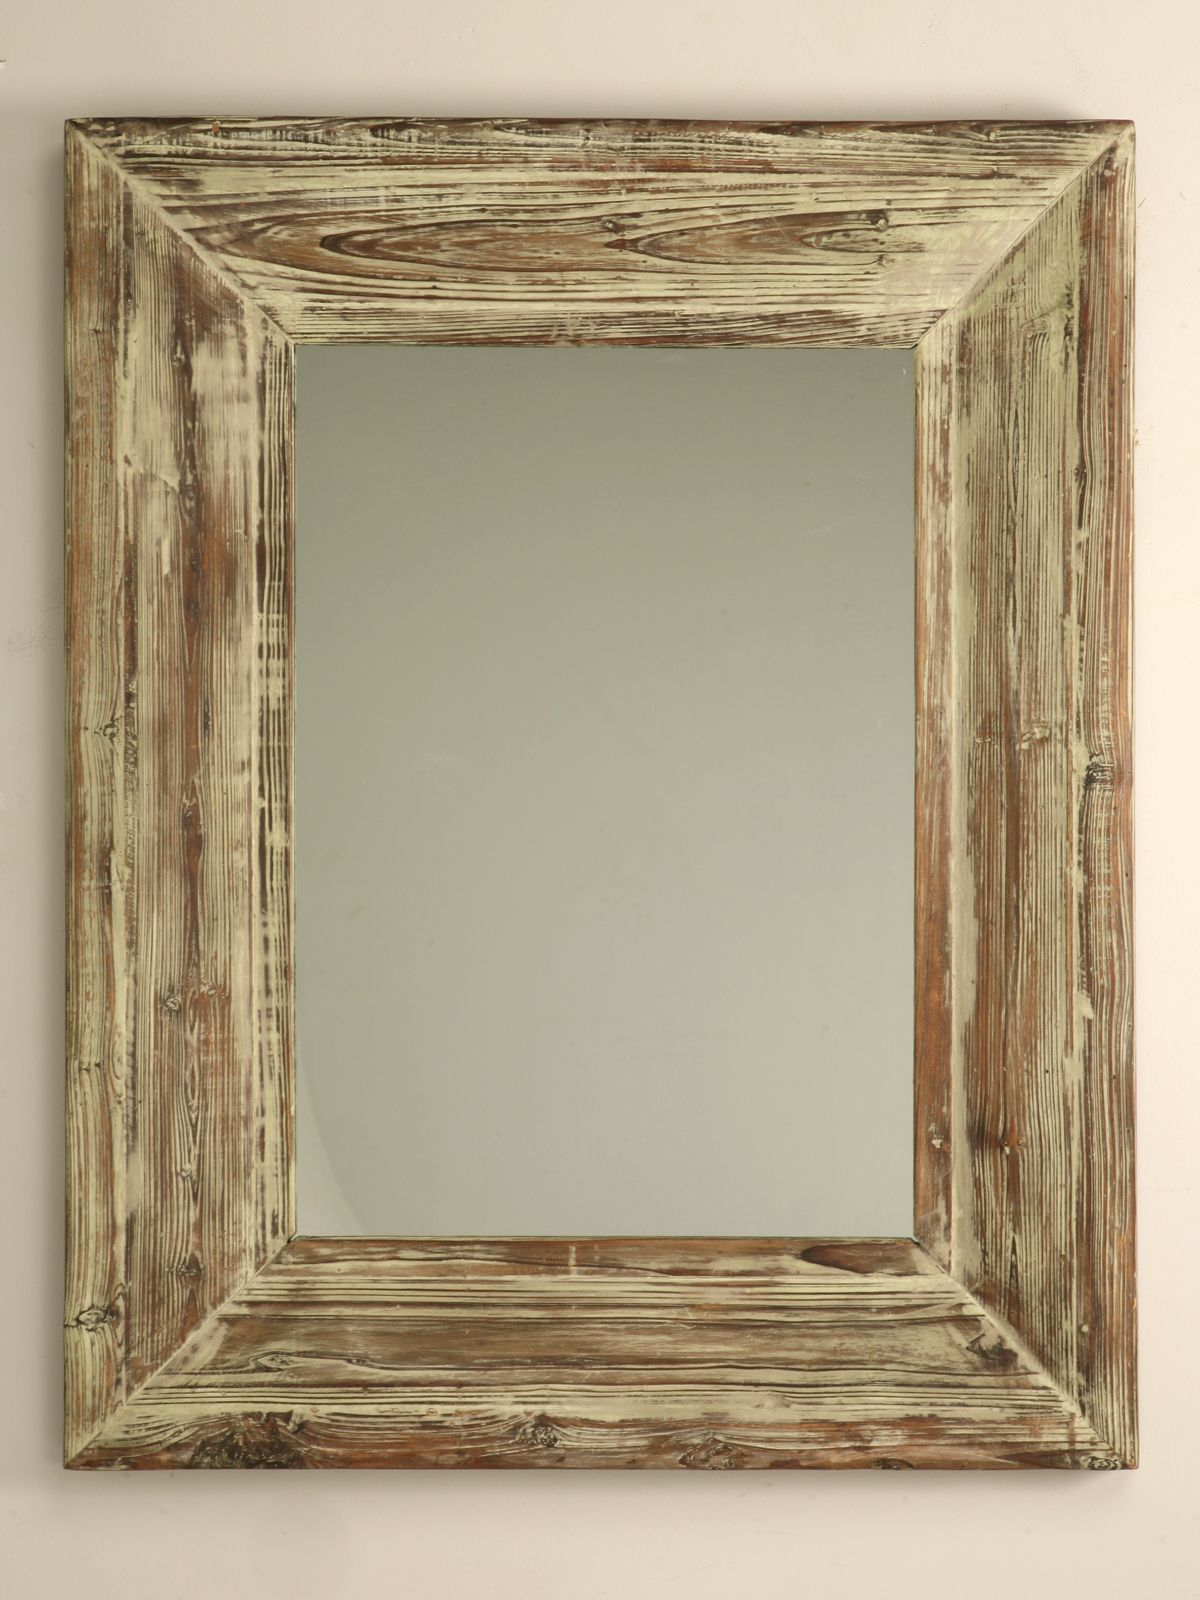 Rustic Frame, Empty, For Accessories Around The Home Set On